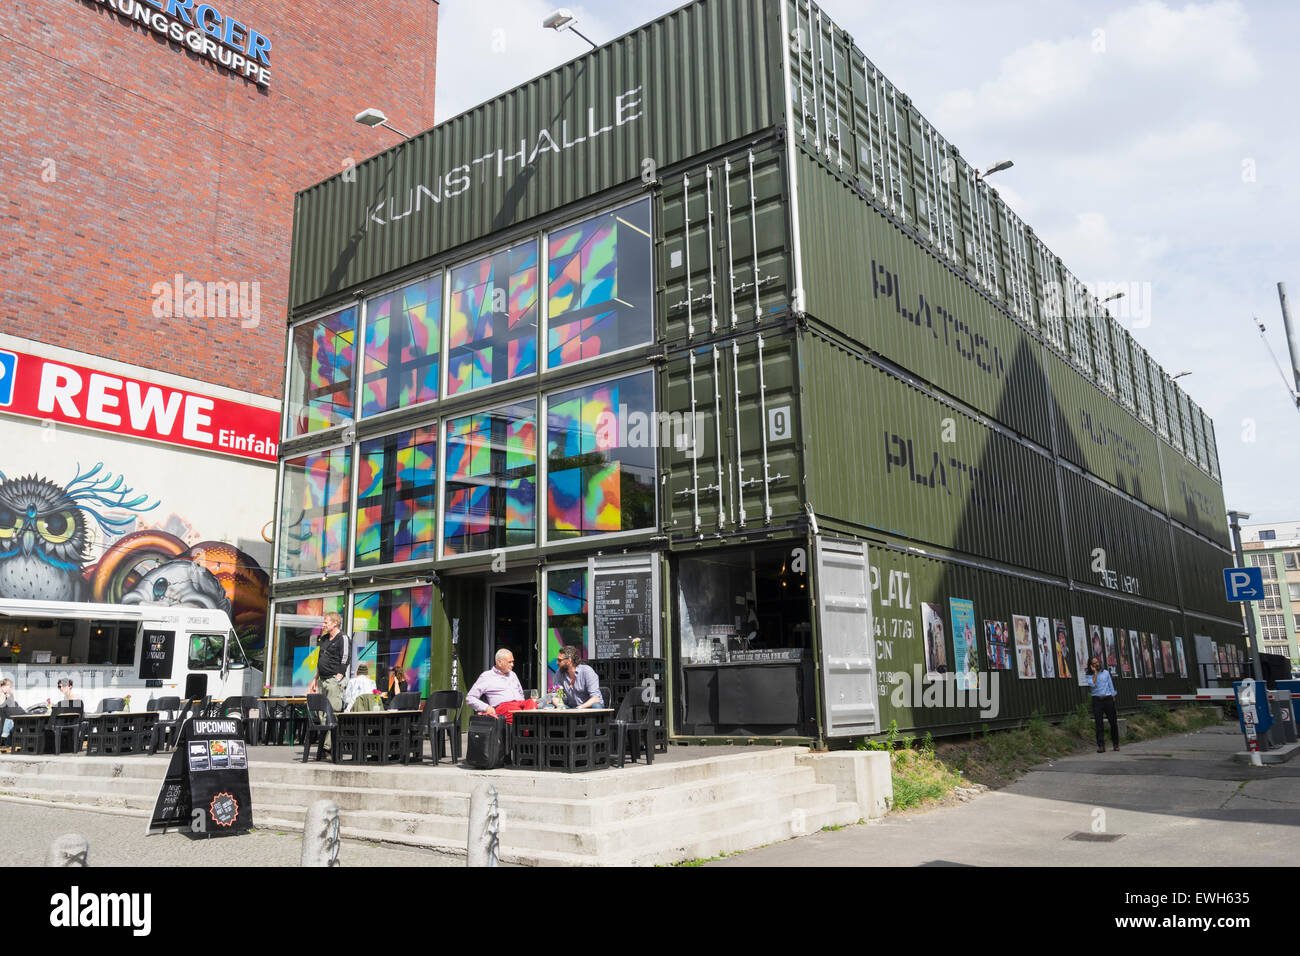 Platoon Kunsthalle art centre built from shipping containers in Prenzaluer Berg in Berlin Germany - Stock Image